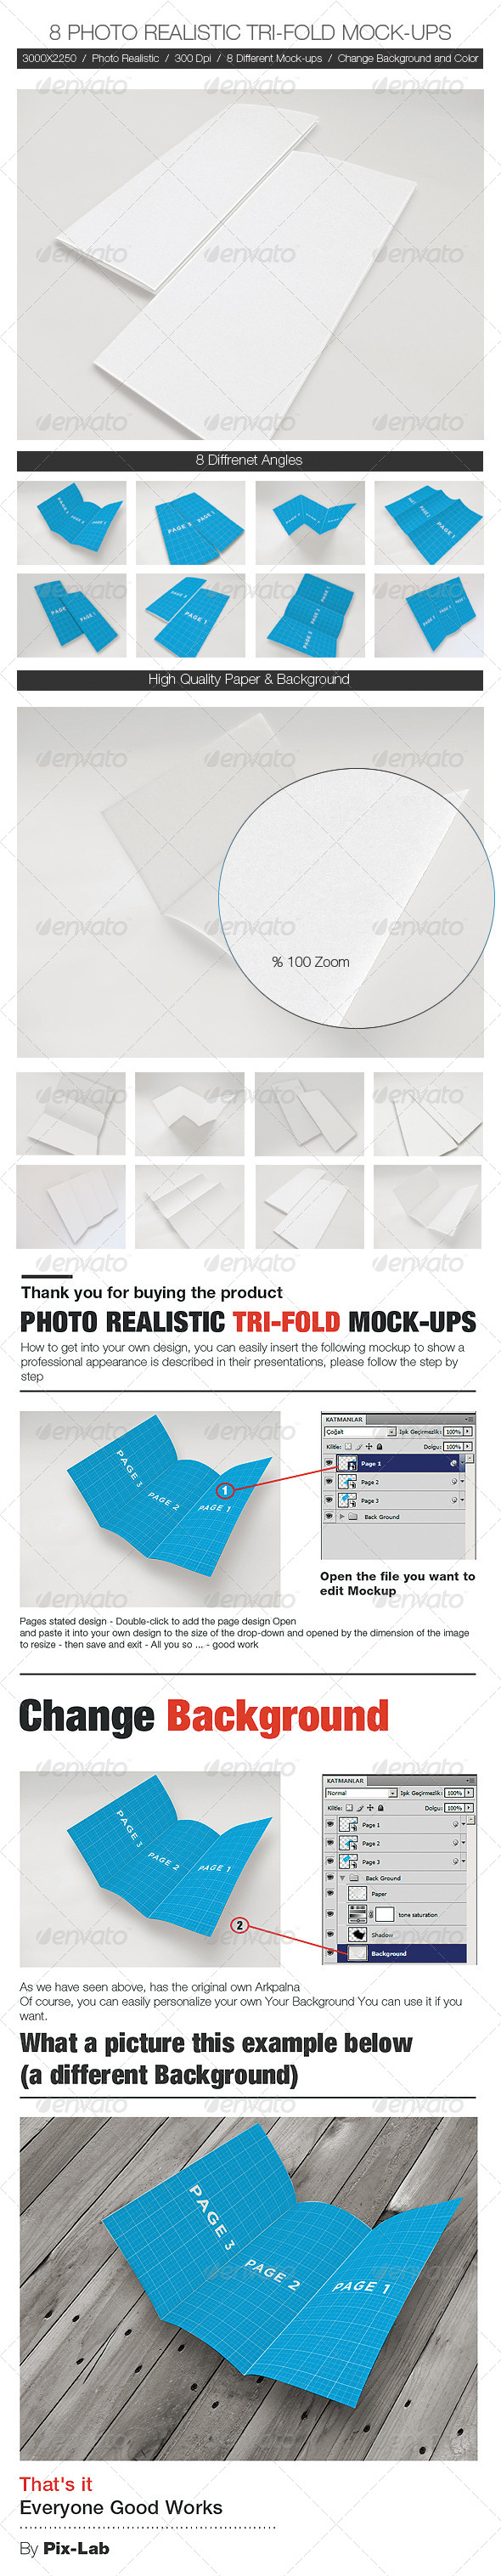 GraphicRiver Photo Realistic Tri-Fold BROCHURE Mock-Ups 5223359